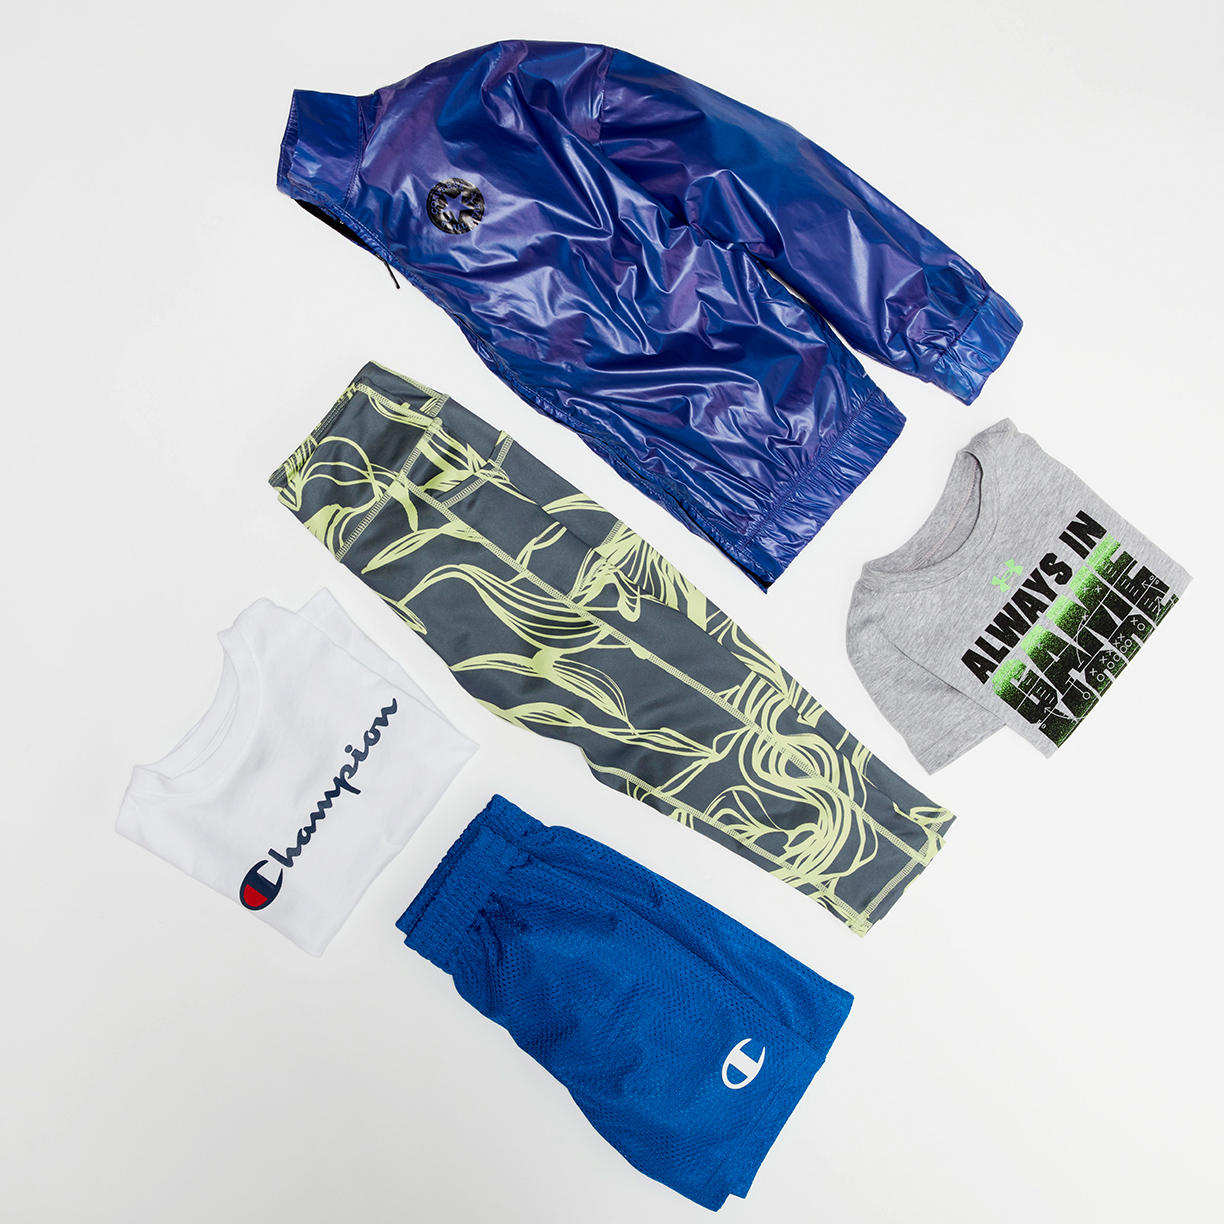 Score! Kids' Activewear Up to 60% Off